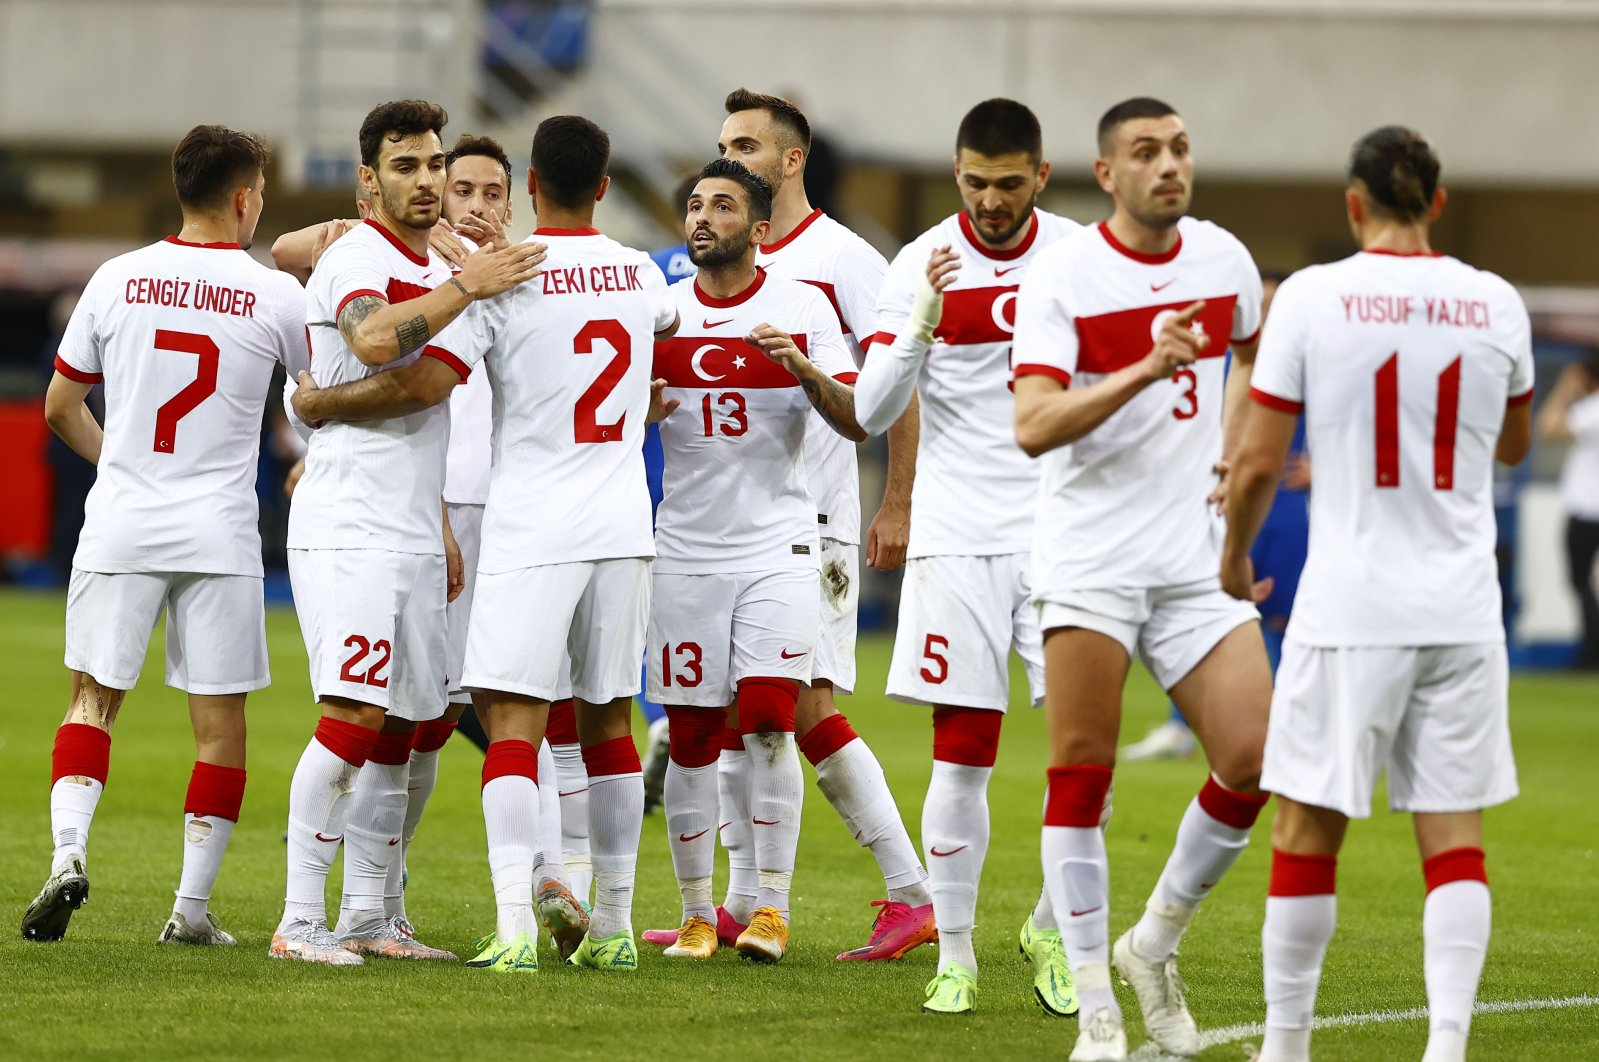 Turkey players celebrate after a friendly match with Moldova ahead of Euro 2020 Championship, in Paderborn, Germany, June 3, 2021. (AA Photo)